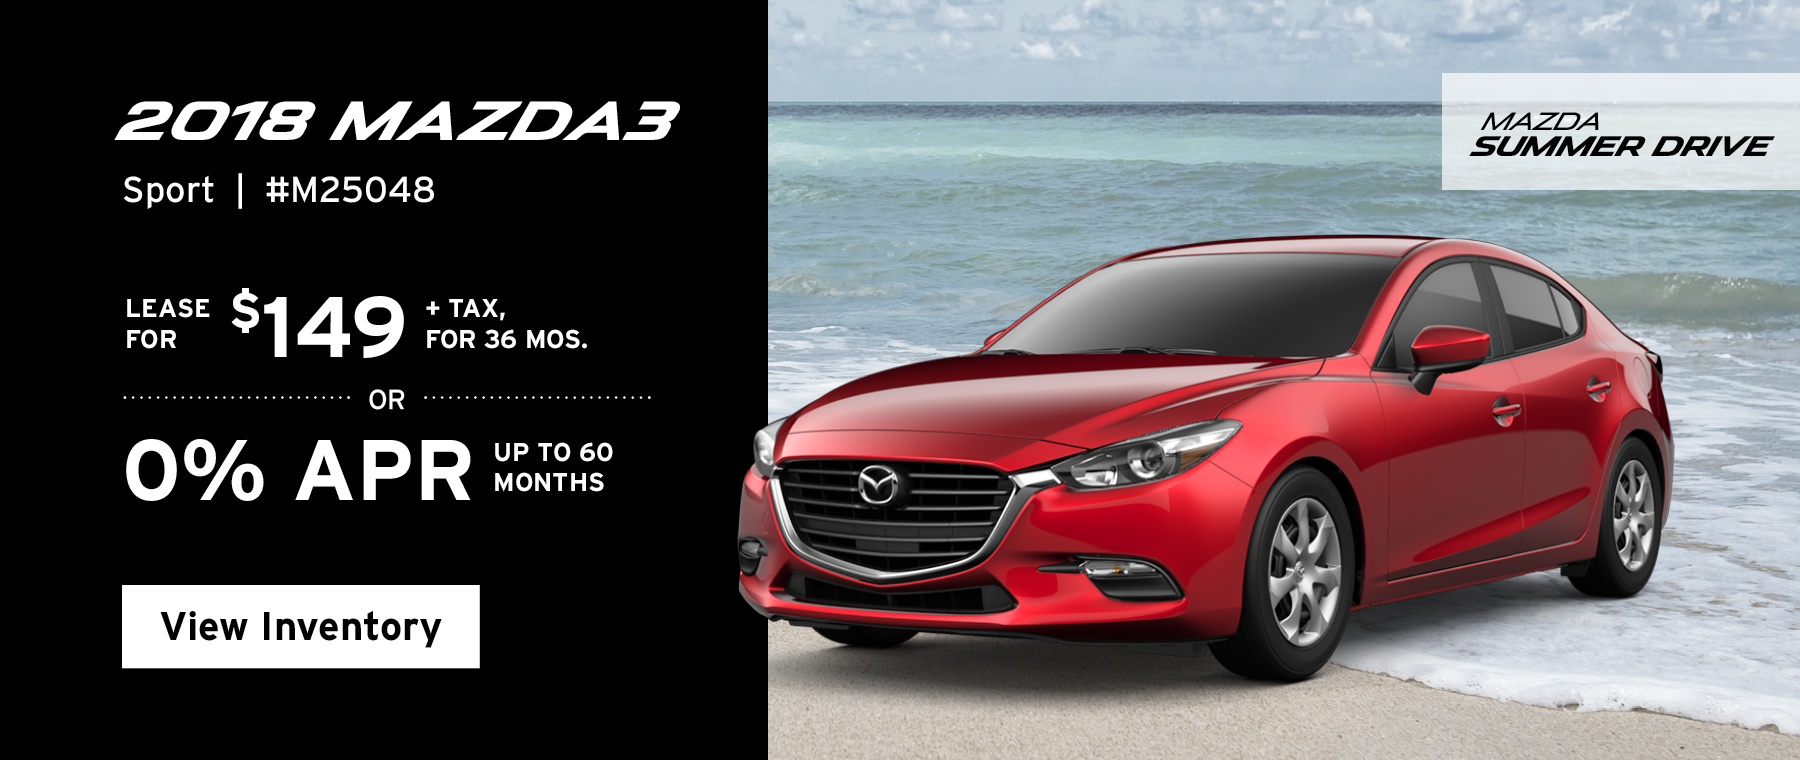 Lease the 2018 Mazda3 Sport for $149, plus tax for 36 months, or 0% APR up to 60 months.